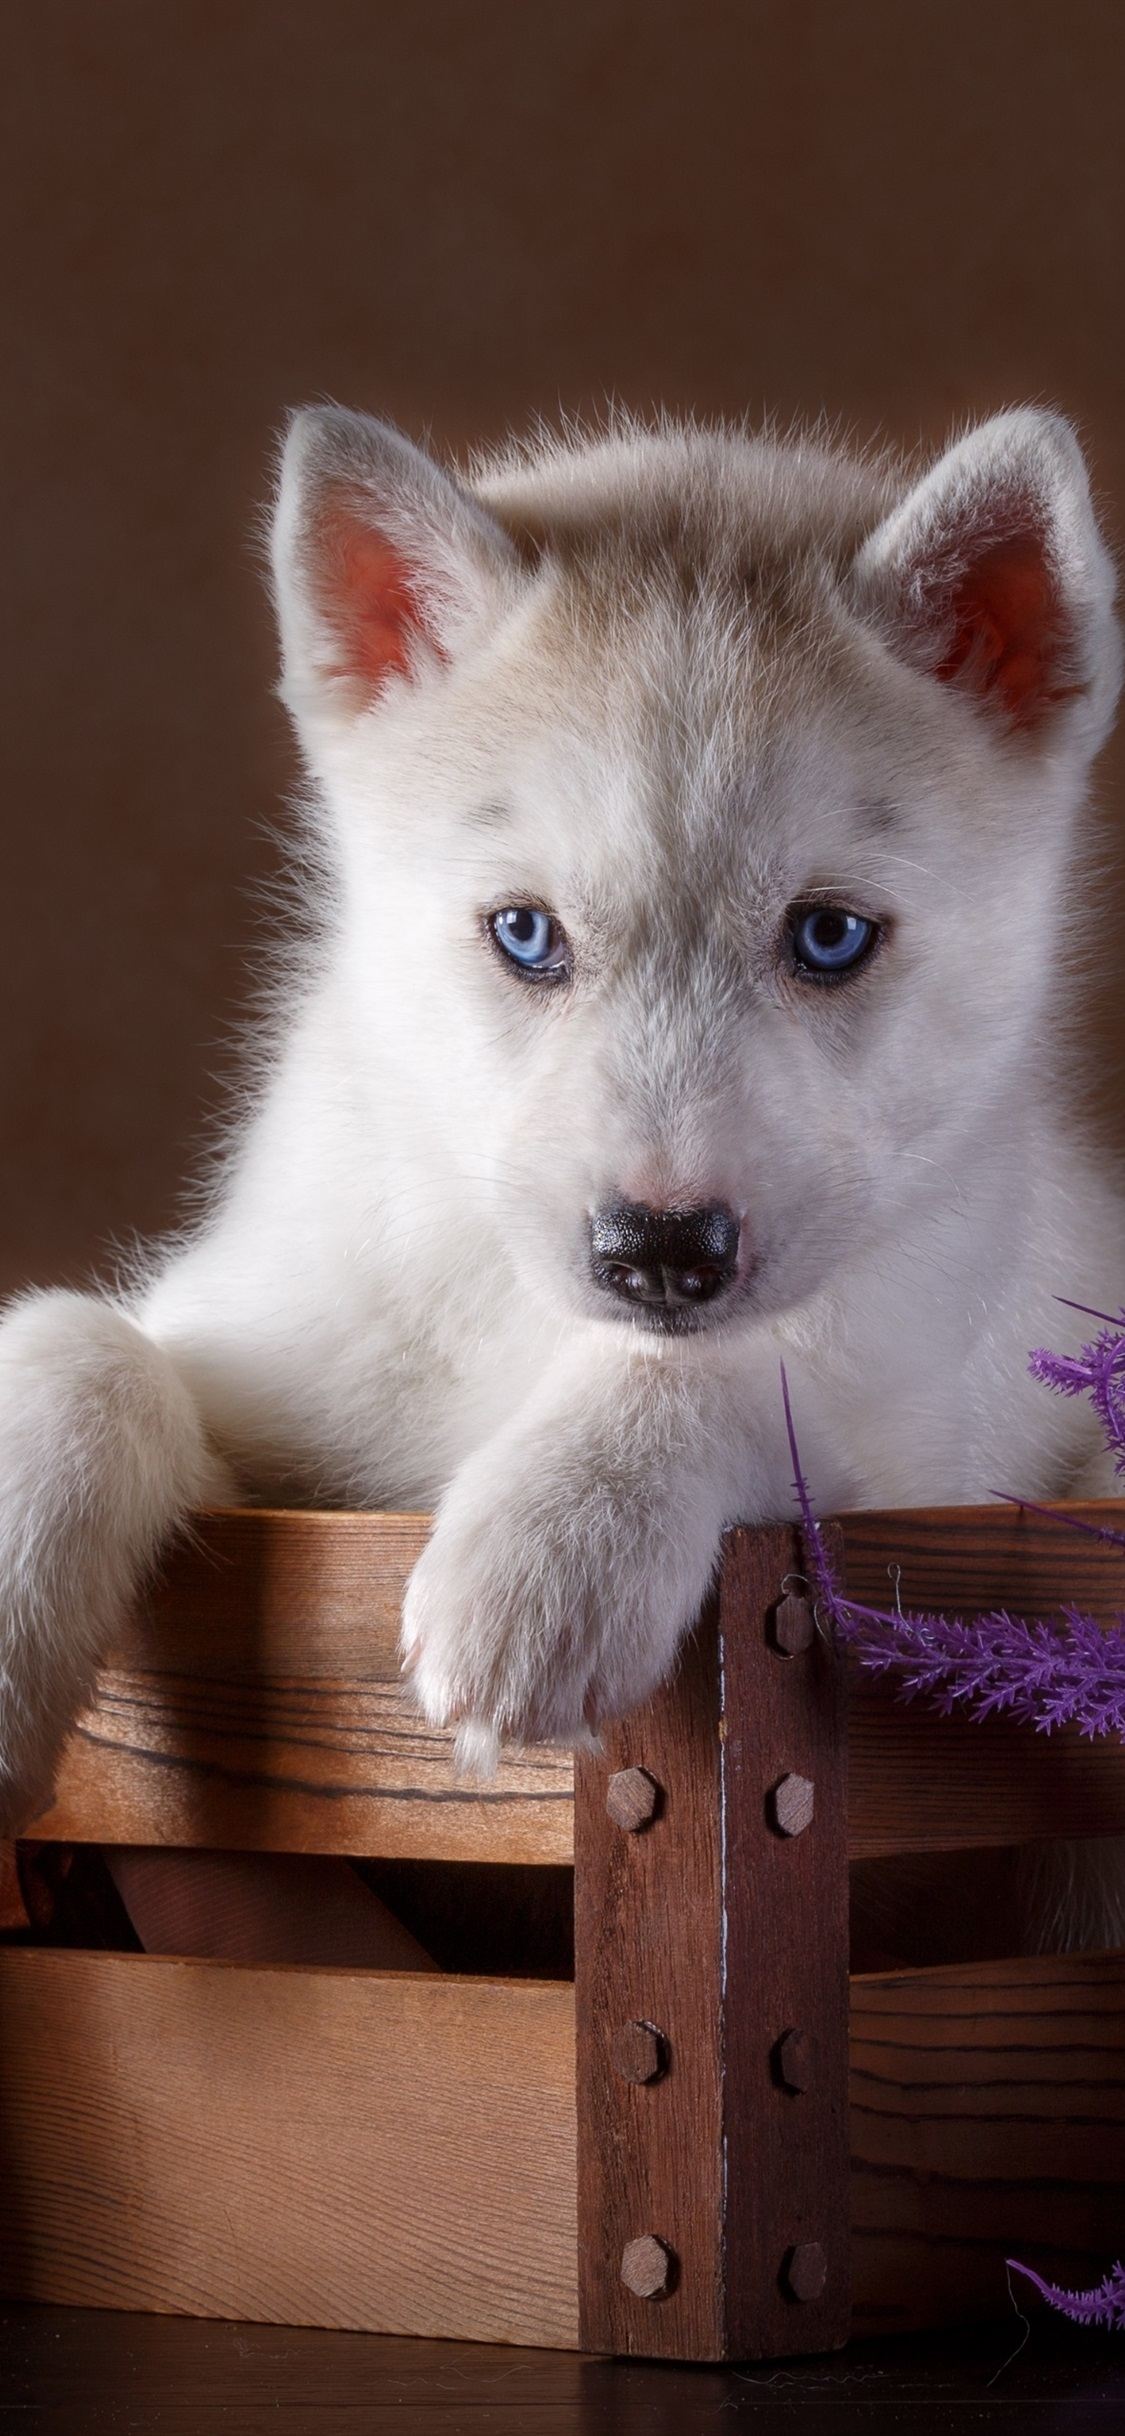 Iphone Wallpaper Blue Eyes Husky Puppy Wood Box Husky Puppy Wallpaper Iphone 3249626 Hd Wallpaper Backgrounds Download